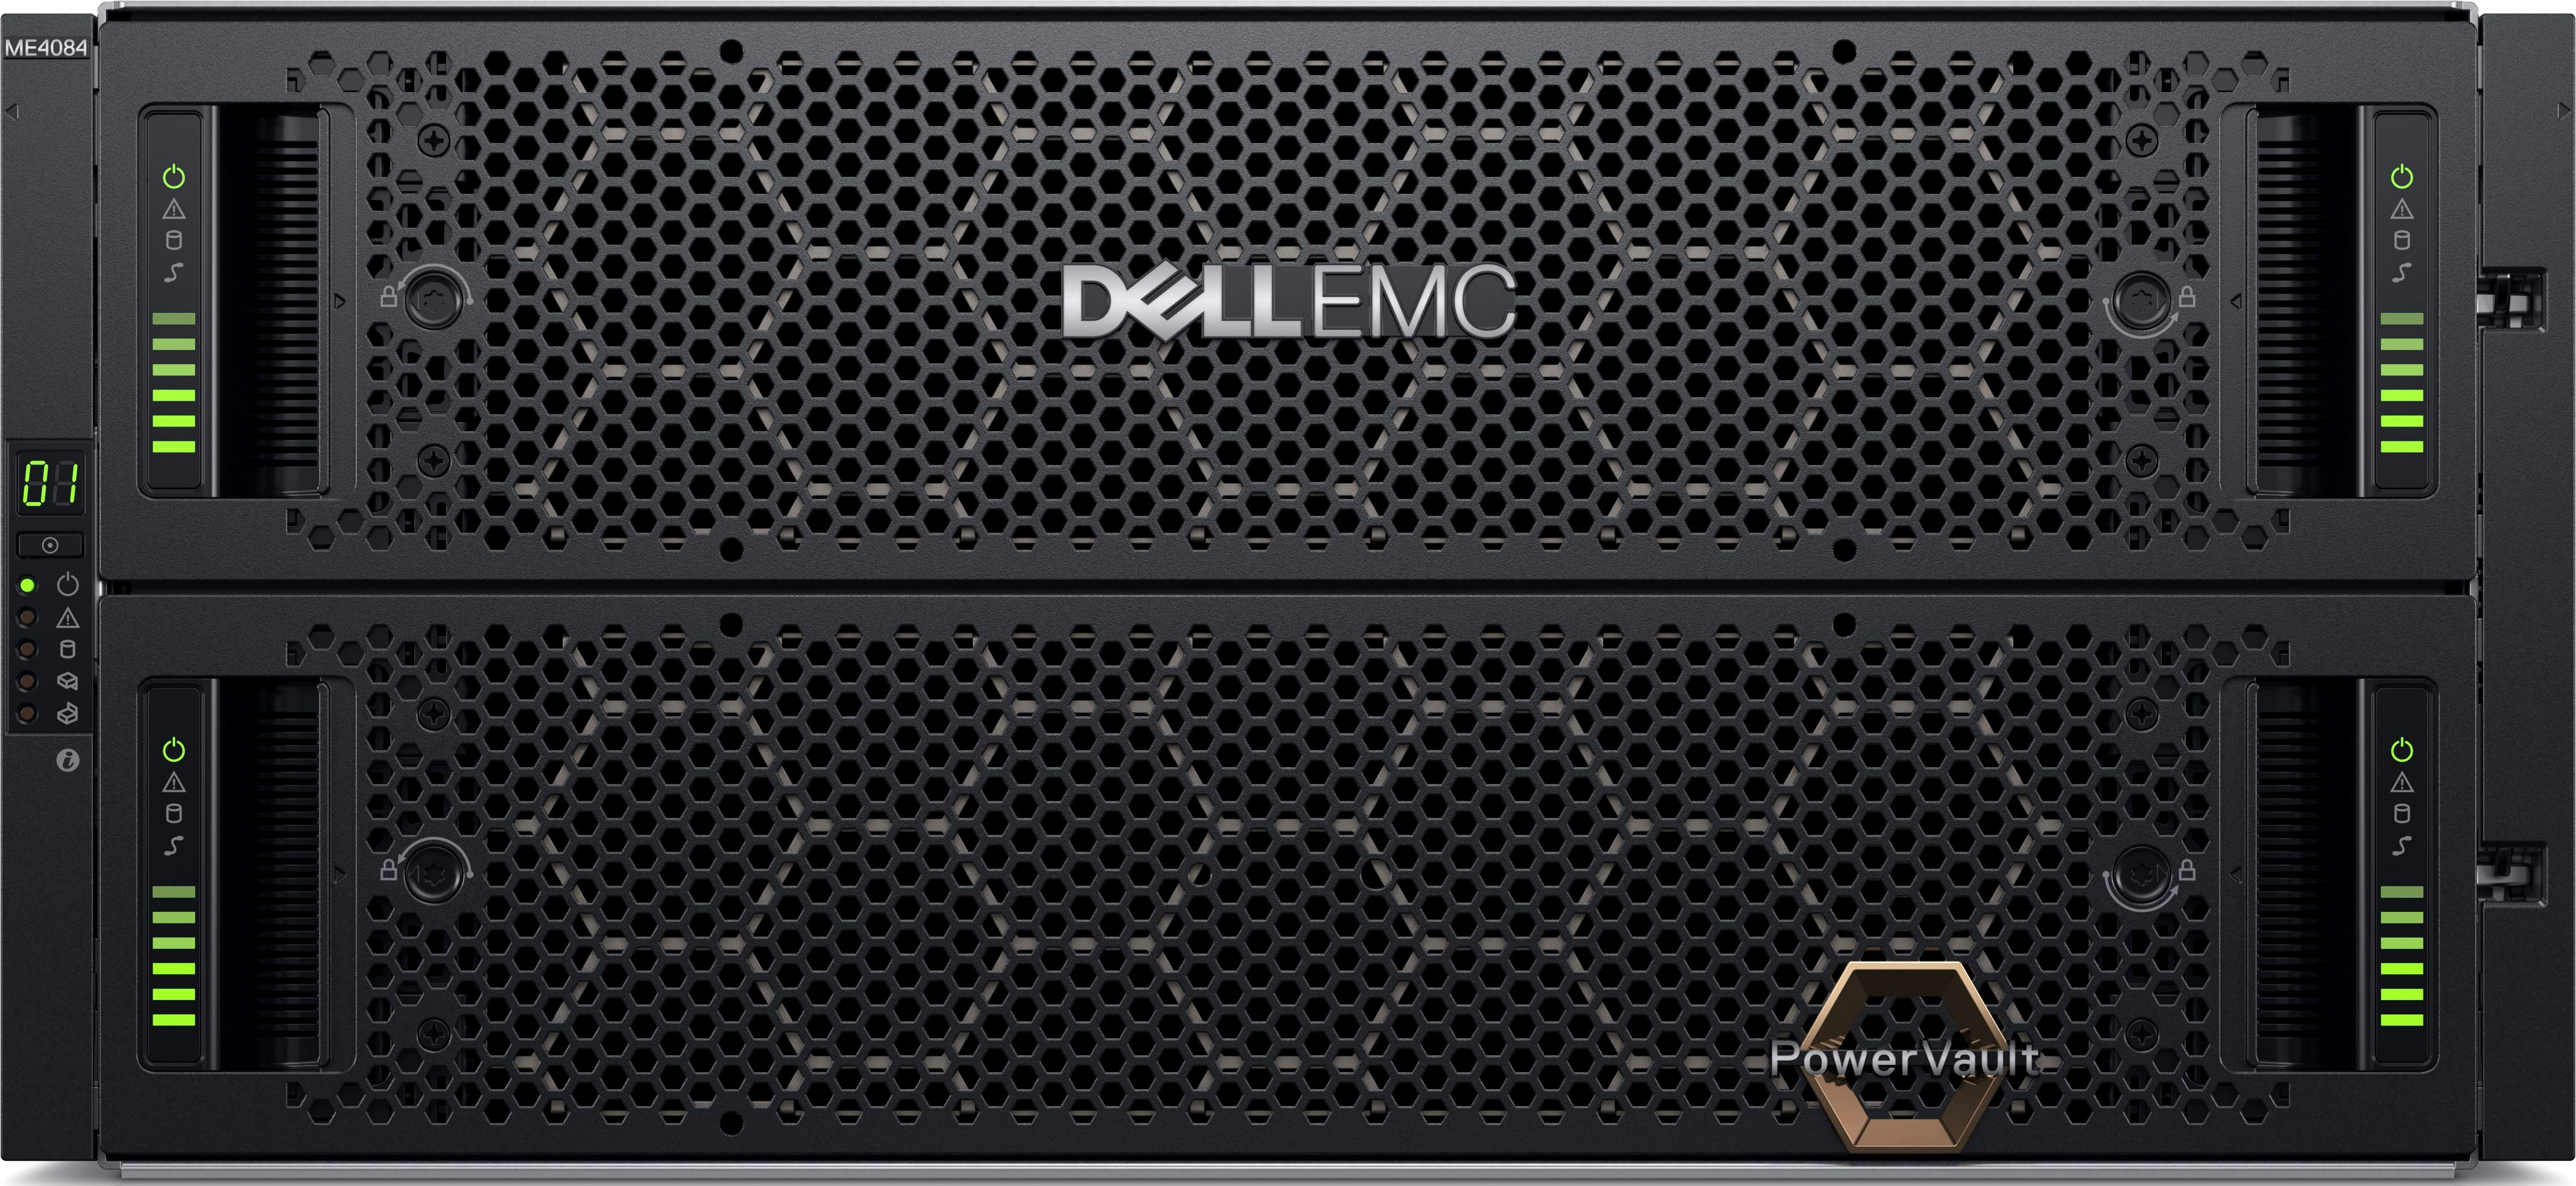 Dell-EMC-PowerVault-ME4084-Front